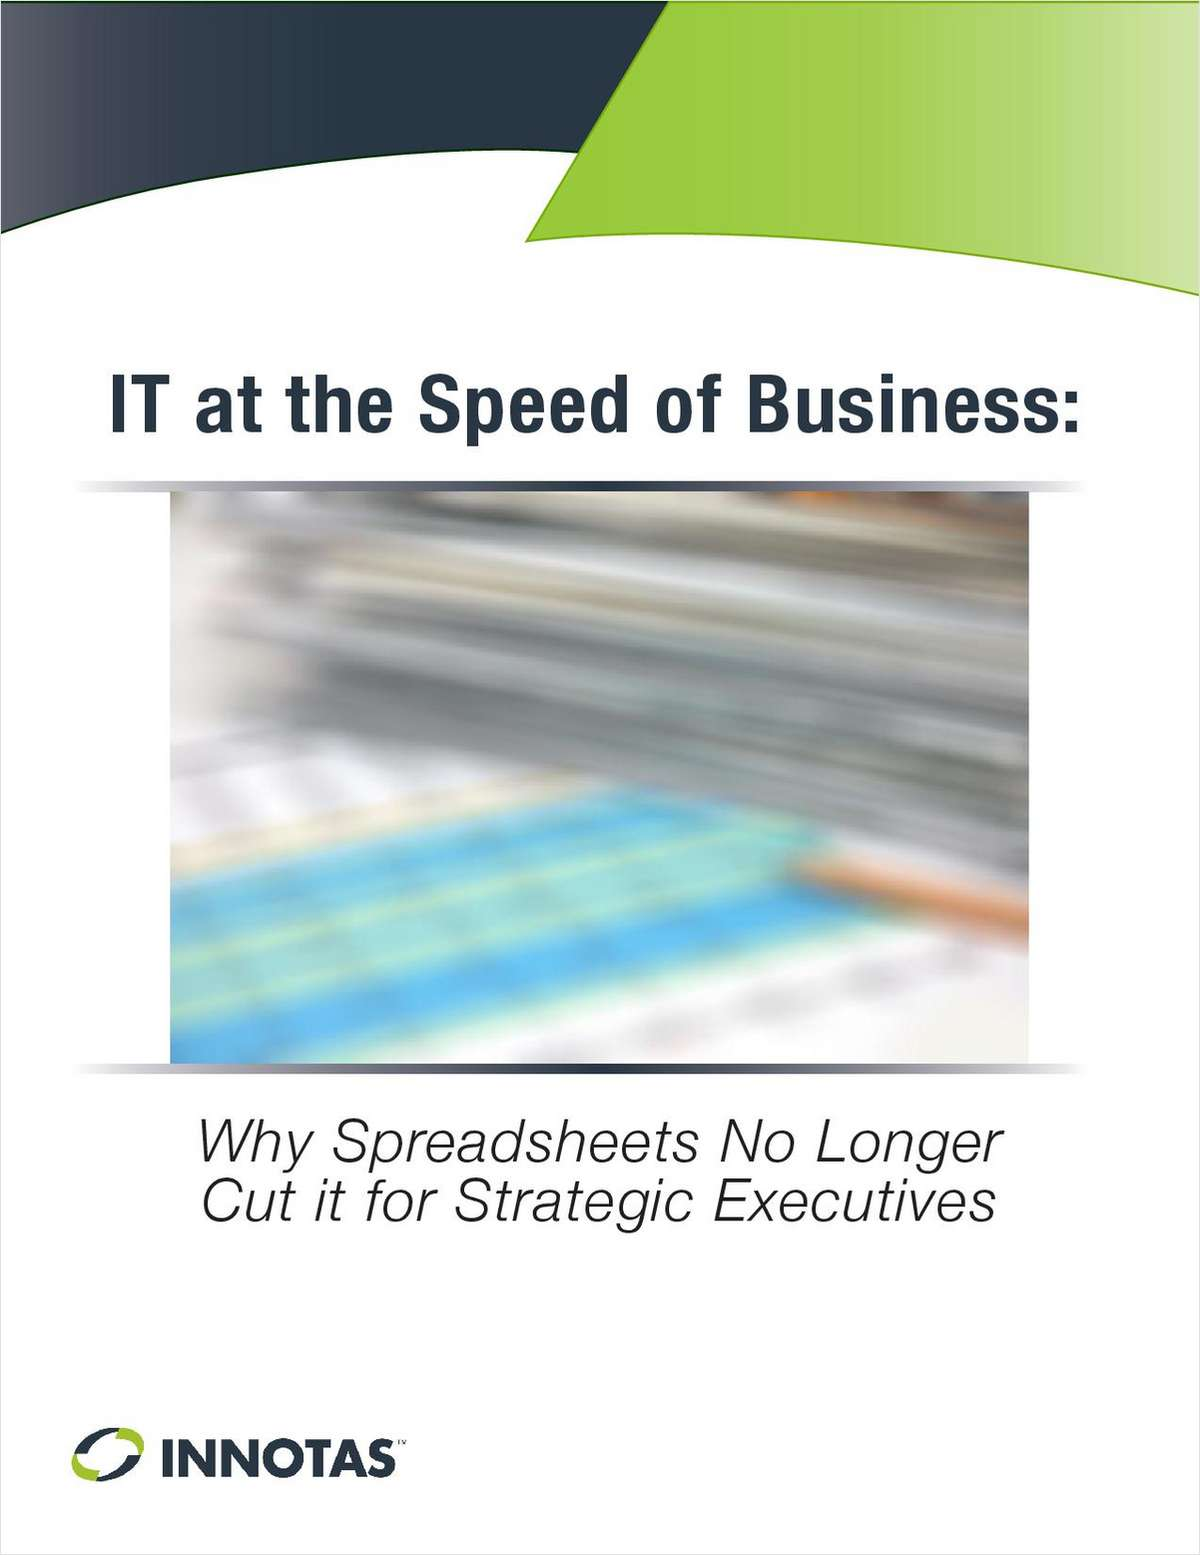 Why Spreadsheets No Longer Cut it for IT Executives